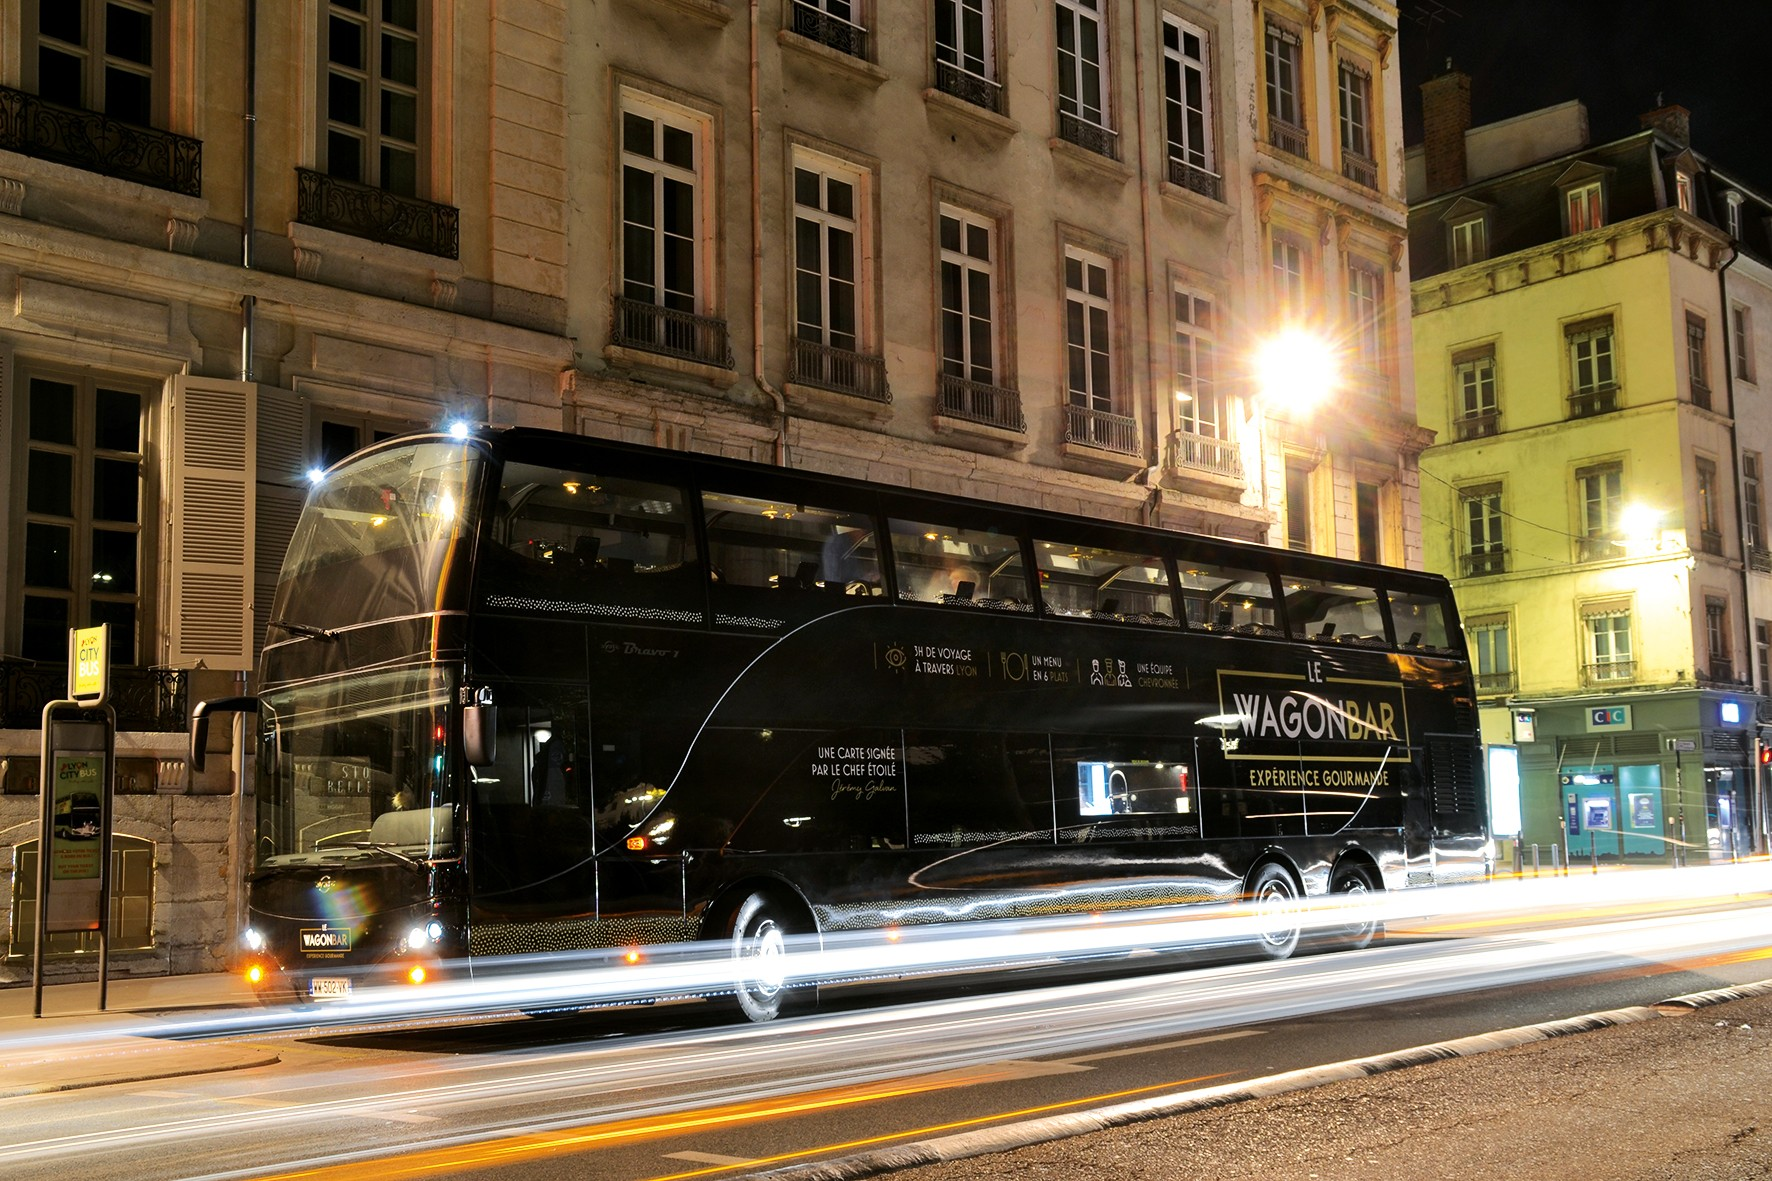 Le Wagon Bar - Test du bus restaurant de Lyon 13